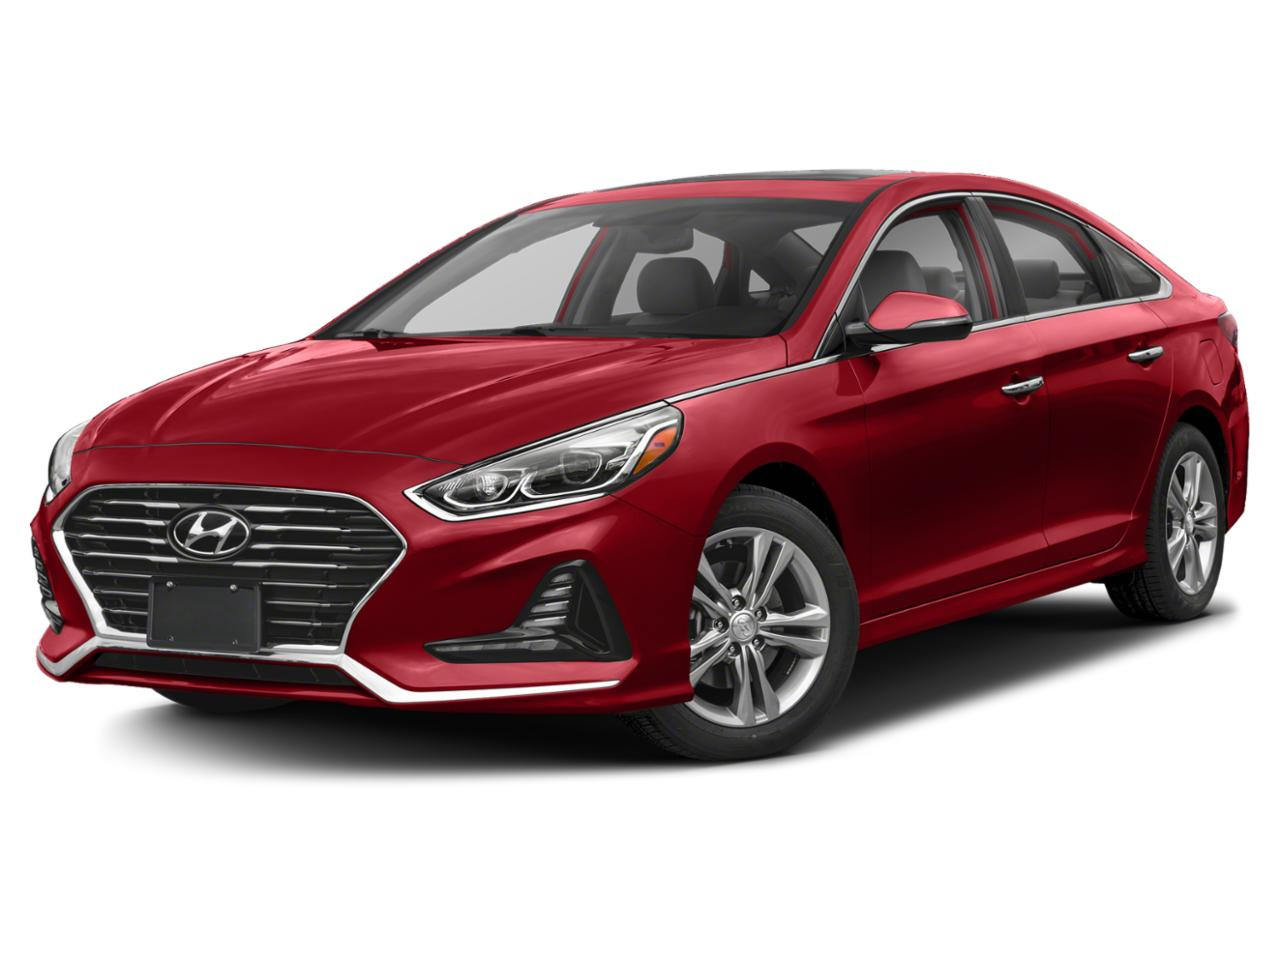 2018 Hyundai Sonata Vehicle Photo in Austin, TX 78759